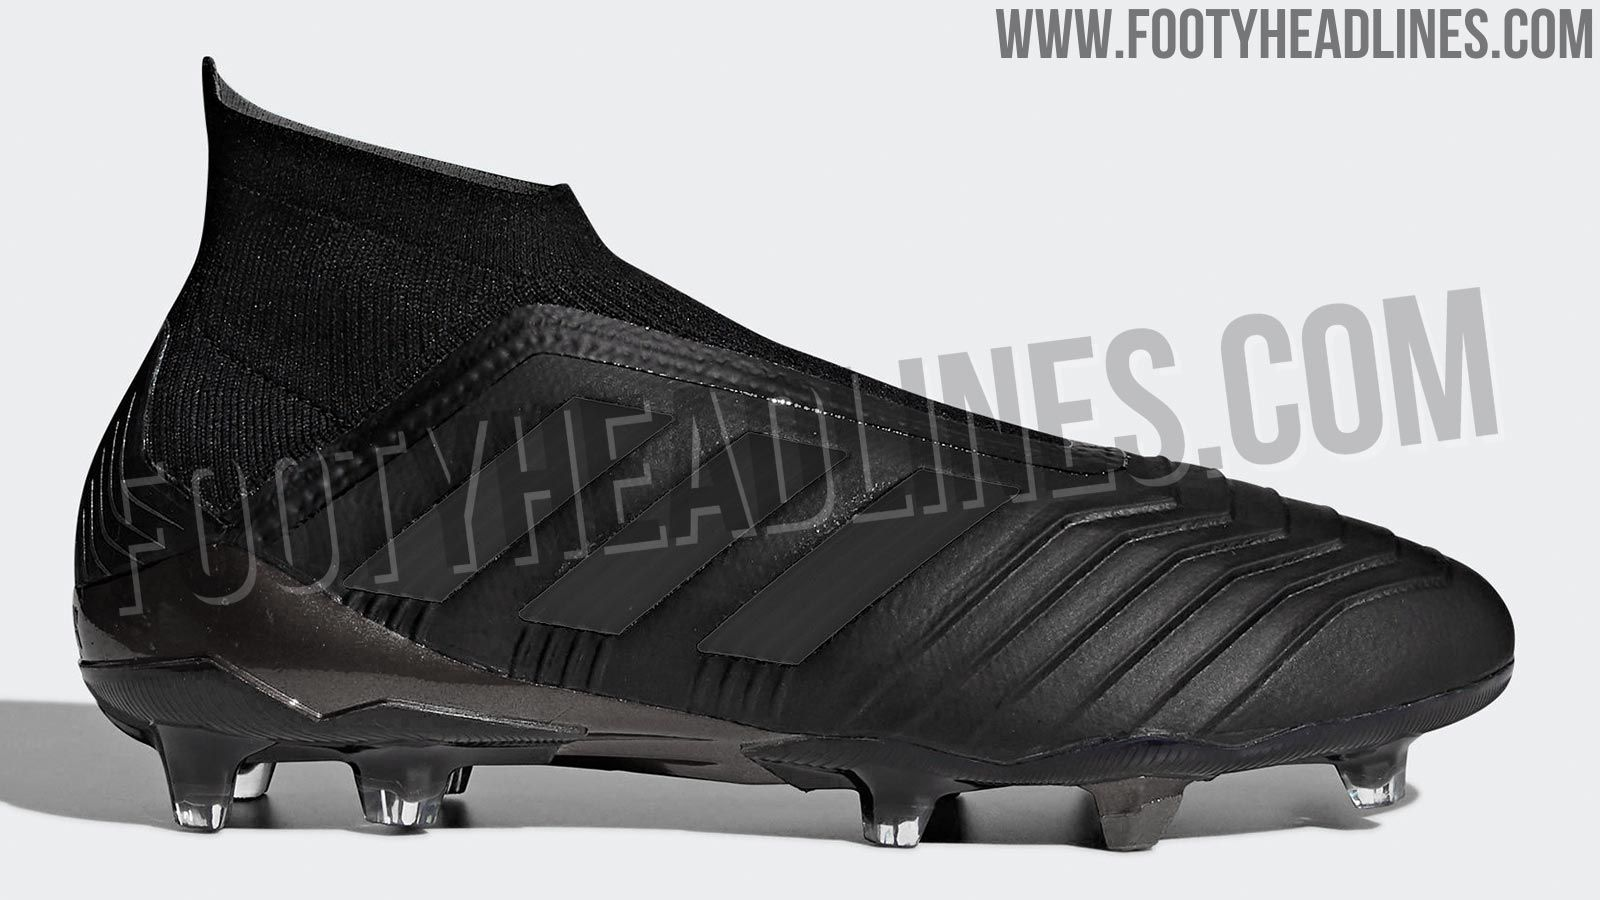 quality design dbceb ff522 The Adidas Predator 18+ Nitecrawler football boots introduce a stealth look  to the latest iteration of the iconic 3 Stripes model, set for a launch  well ...